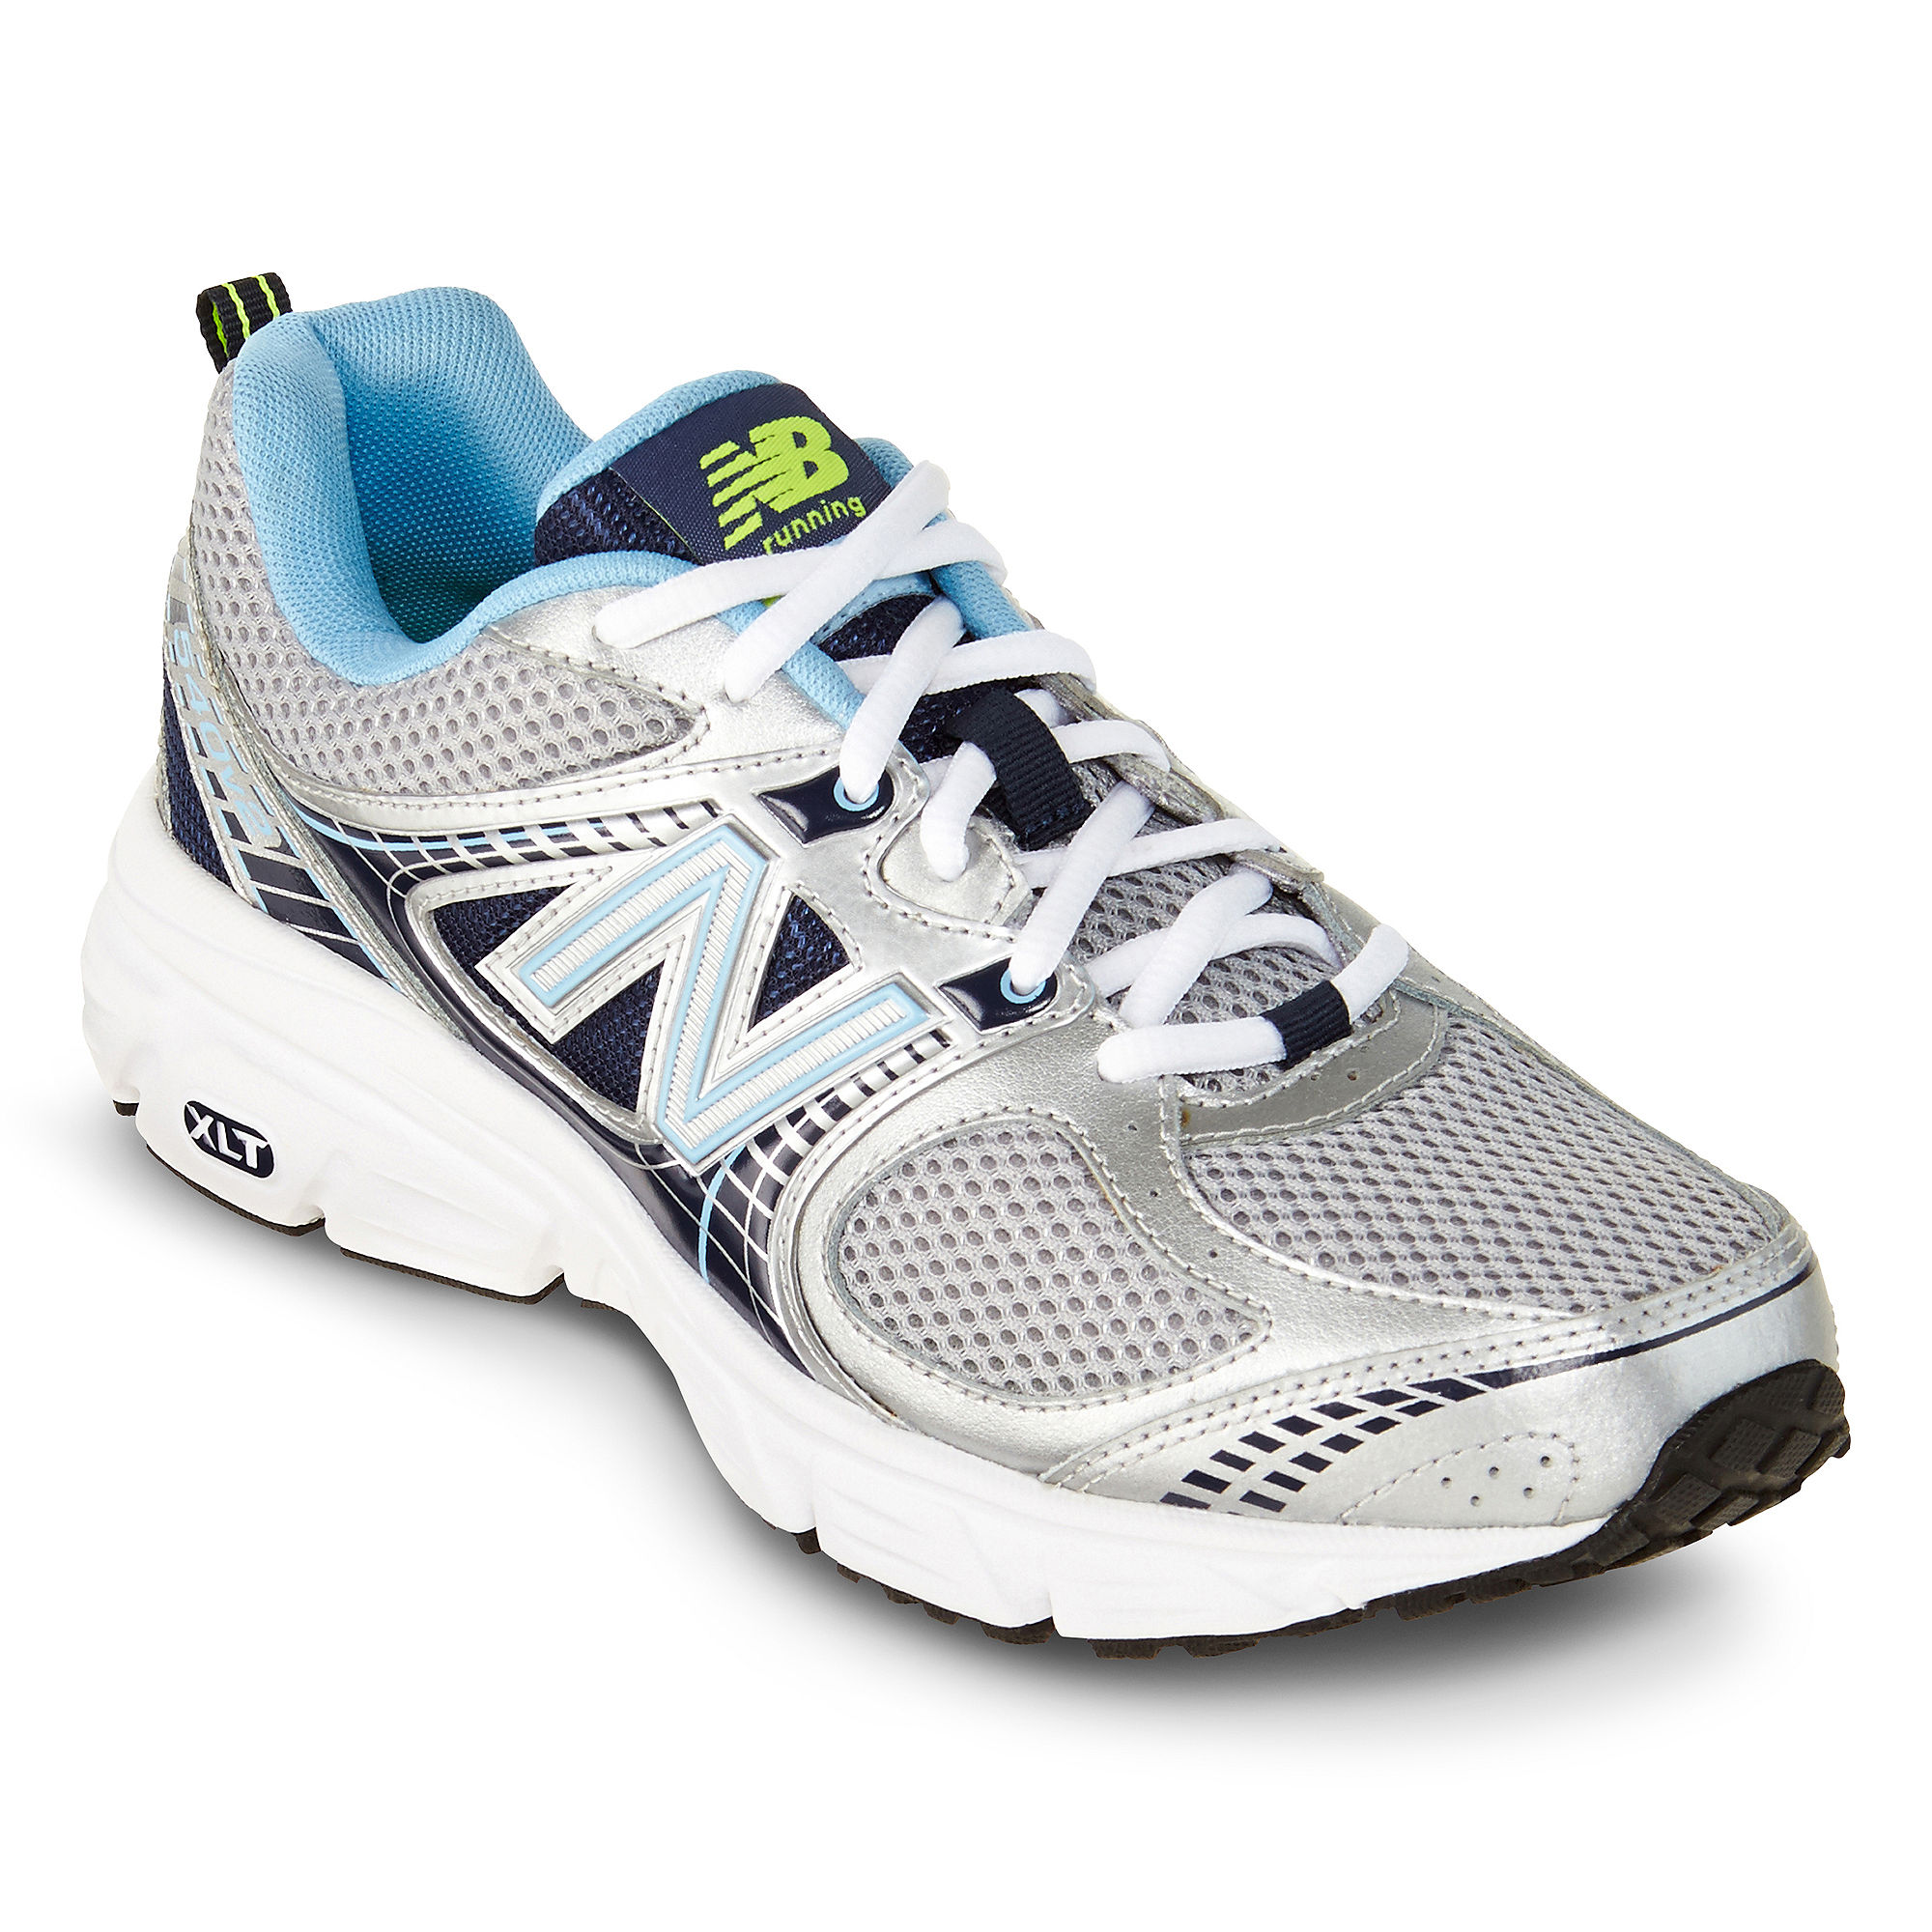 ... UPC 888098528978 product image for New Balance 540 Womens Running Shoes  | upcitemdb.com